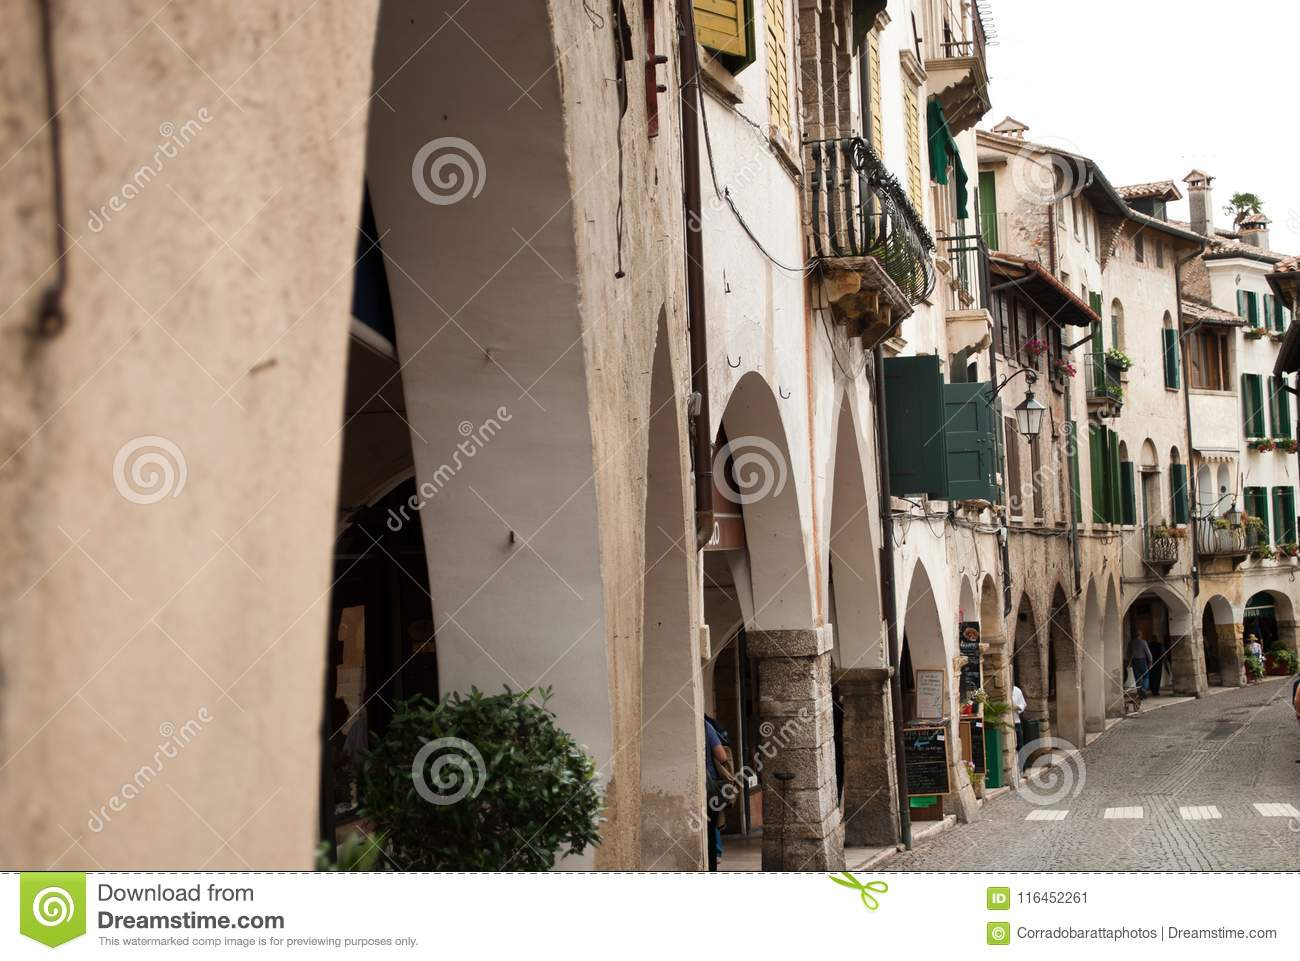 Decoration Facade Villa Algerie The Narrow Alleys Of The Beautiful Town Of Asolo In Treviso Italy